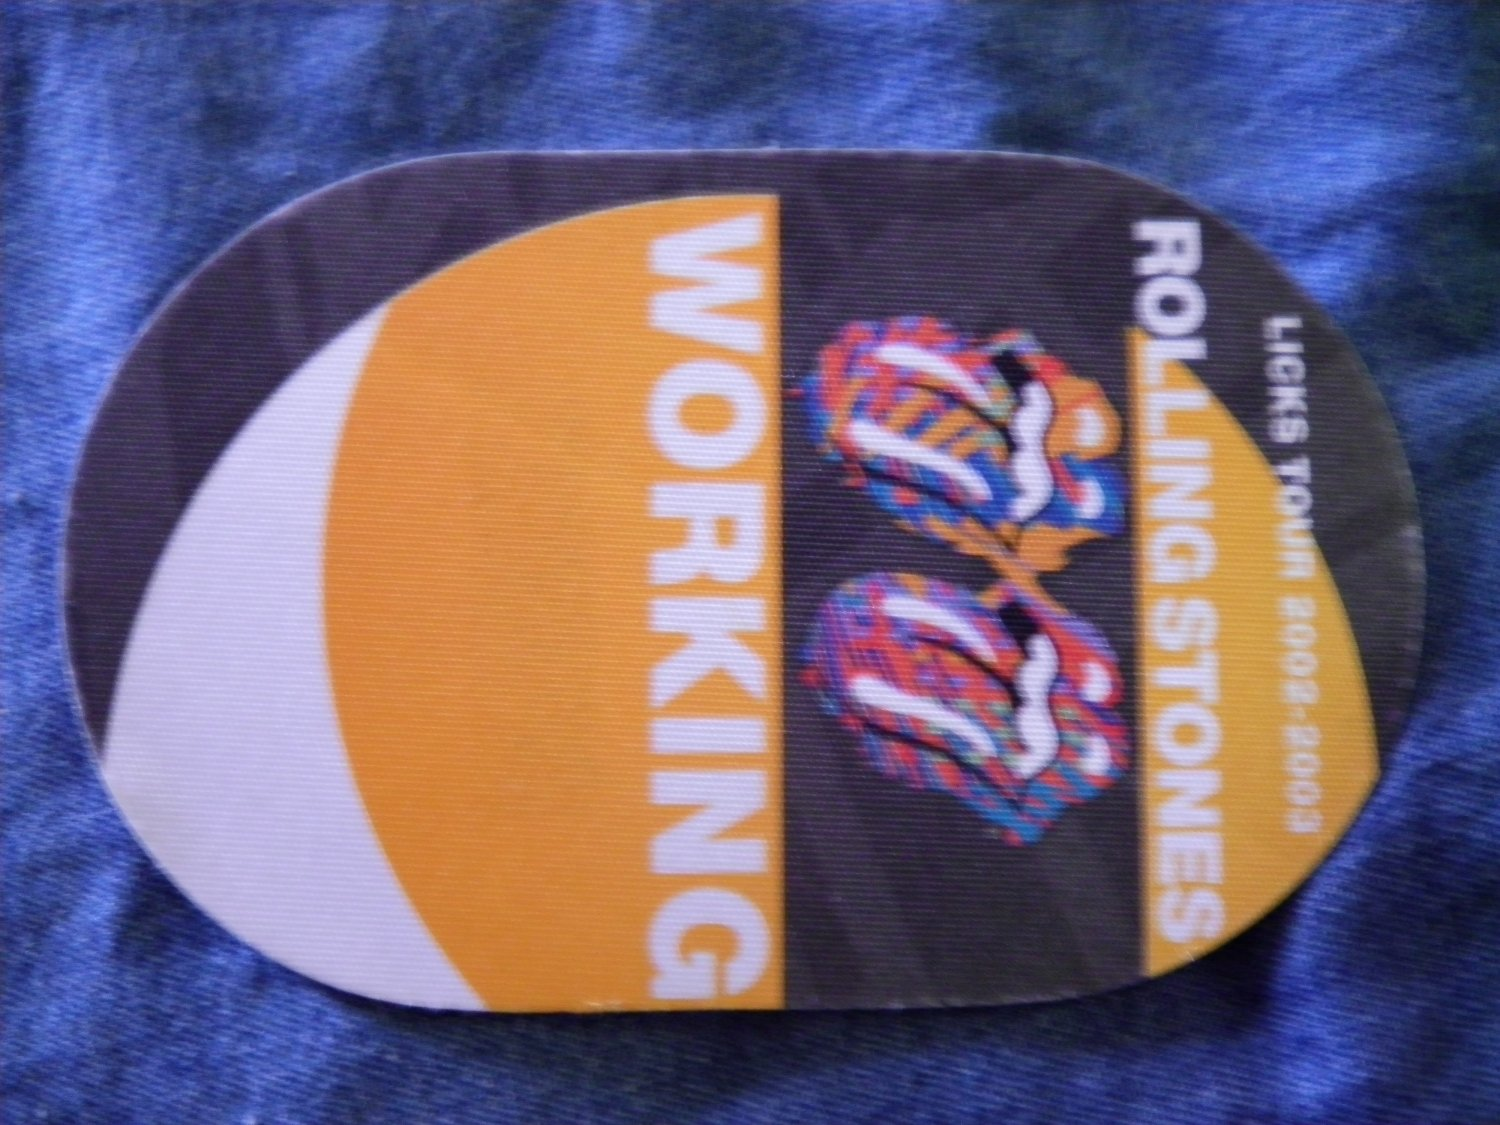 THE ROLLING STONES BACKSTAGE PASS Licks Tour 2002-2003 working bsp